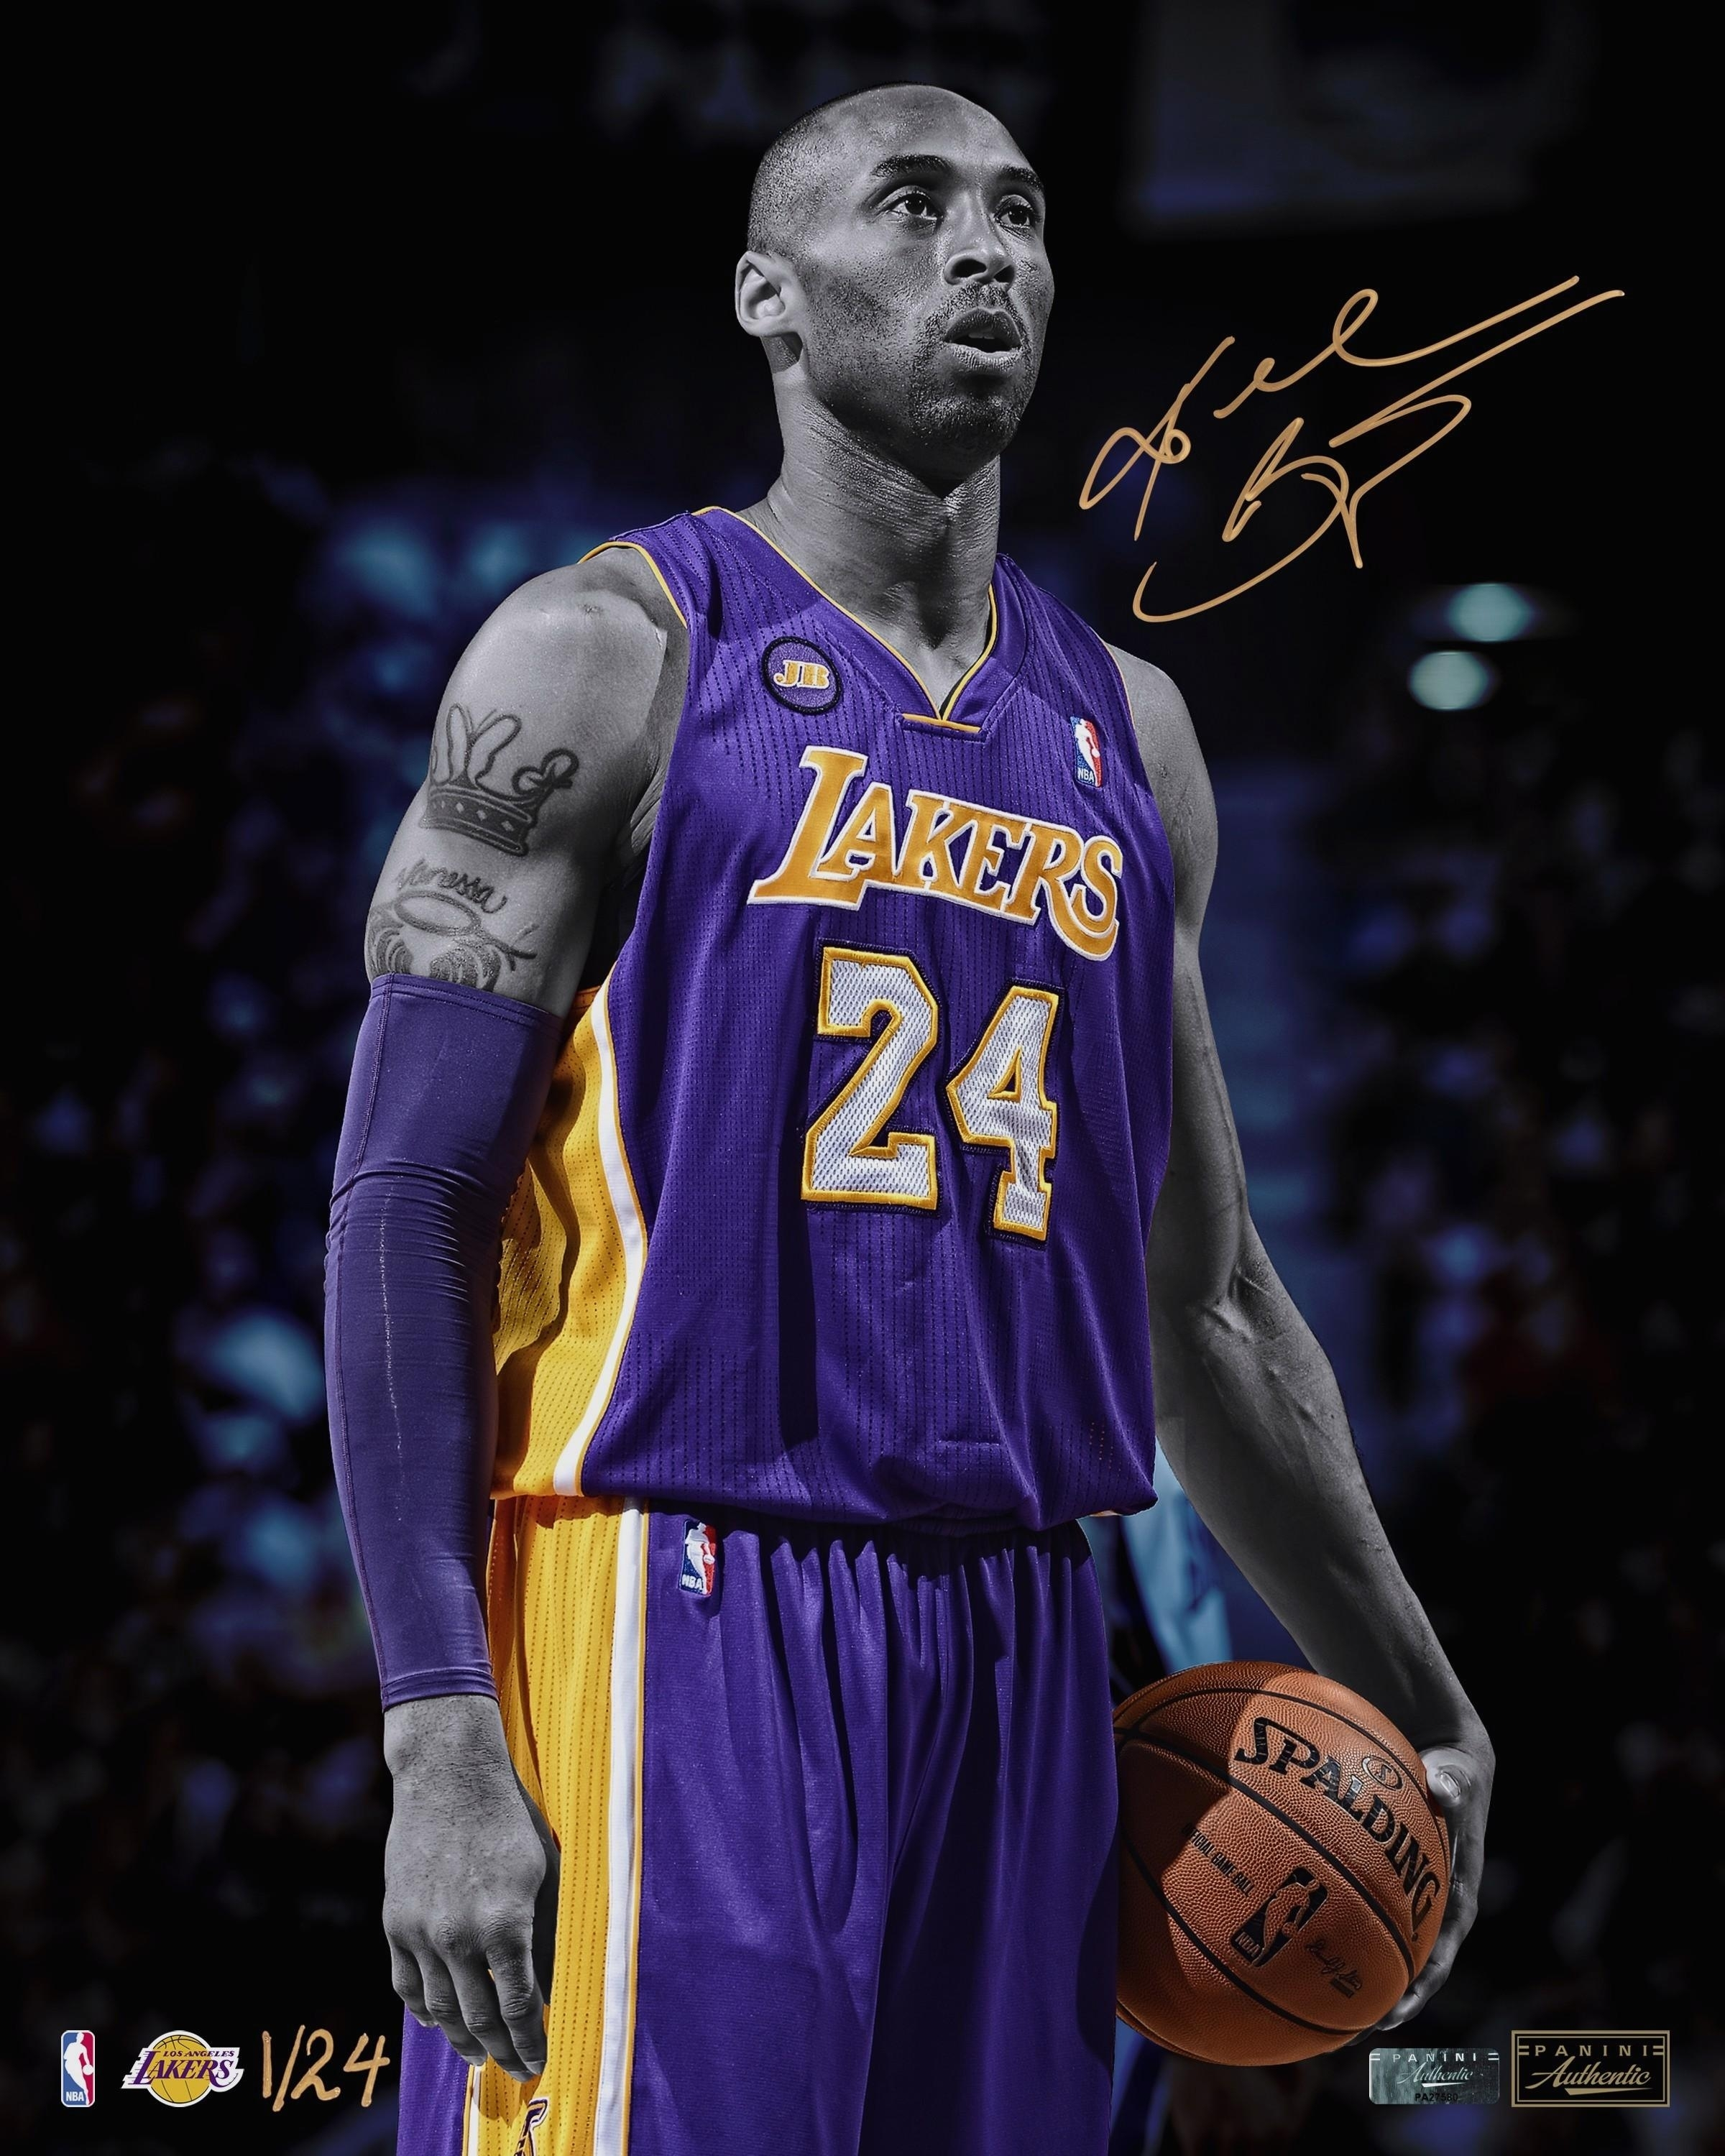 kobe bryant wallpapers hd download | free wallpapers | pinterest